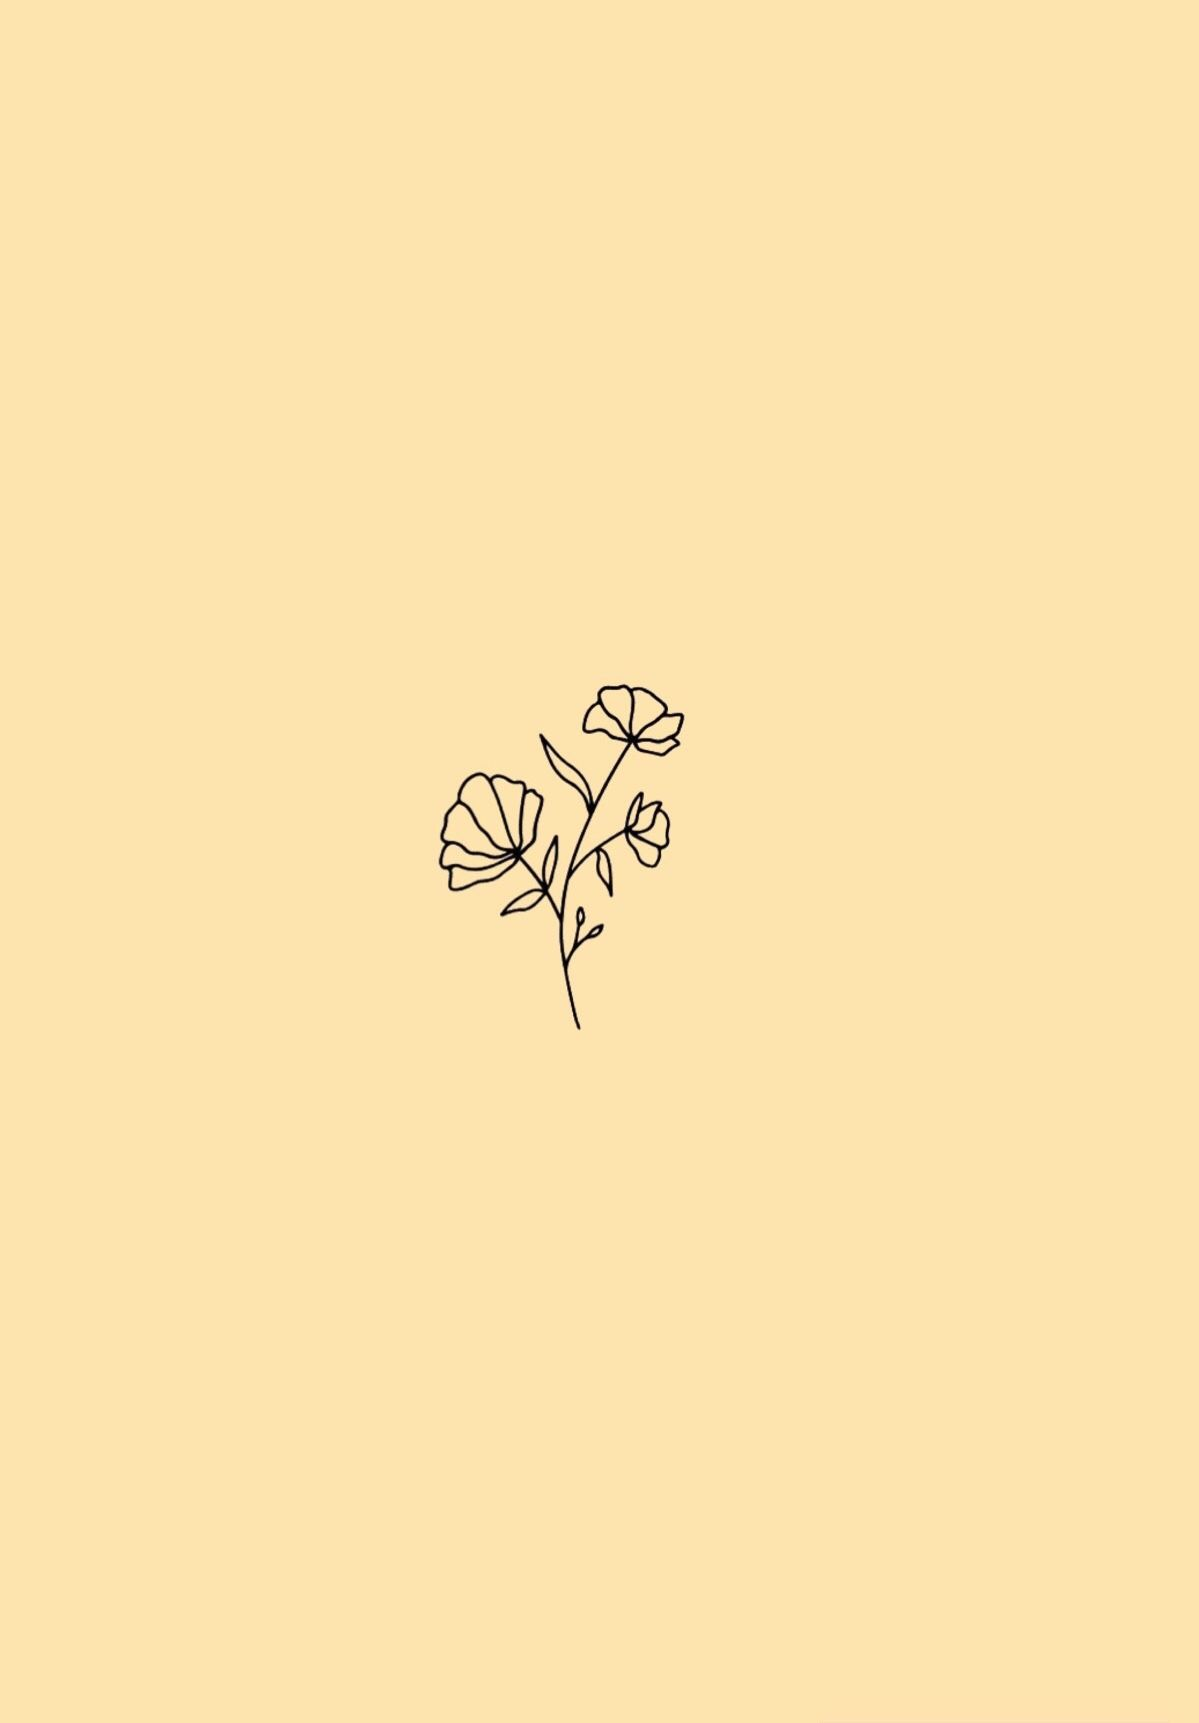 Minimalist Flower Wallpaper Pastel Yellow Background Yellow